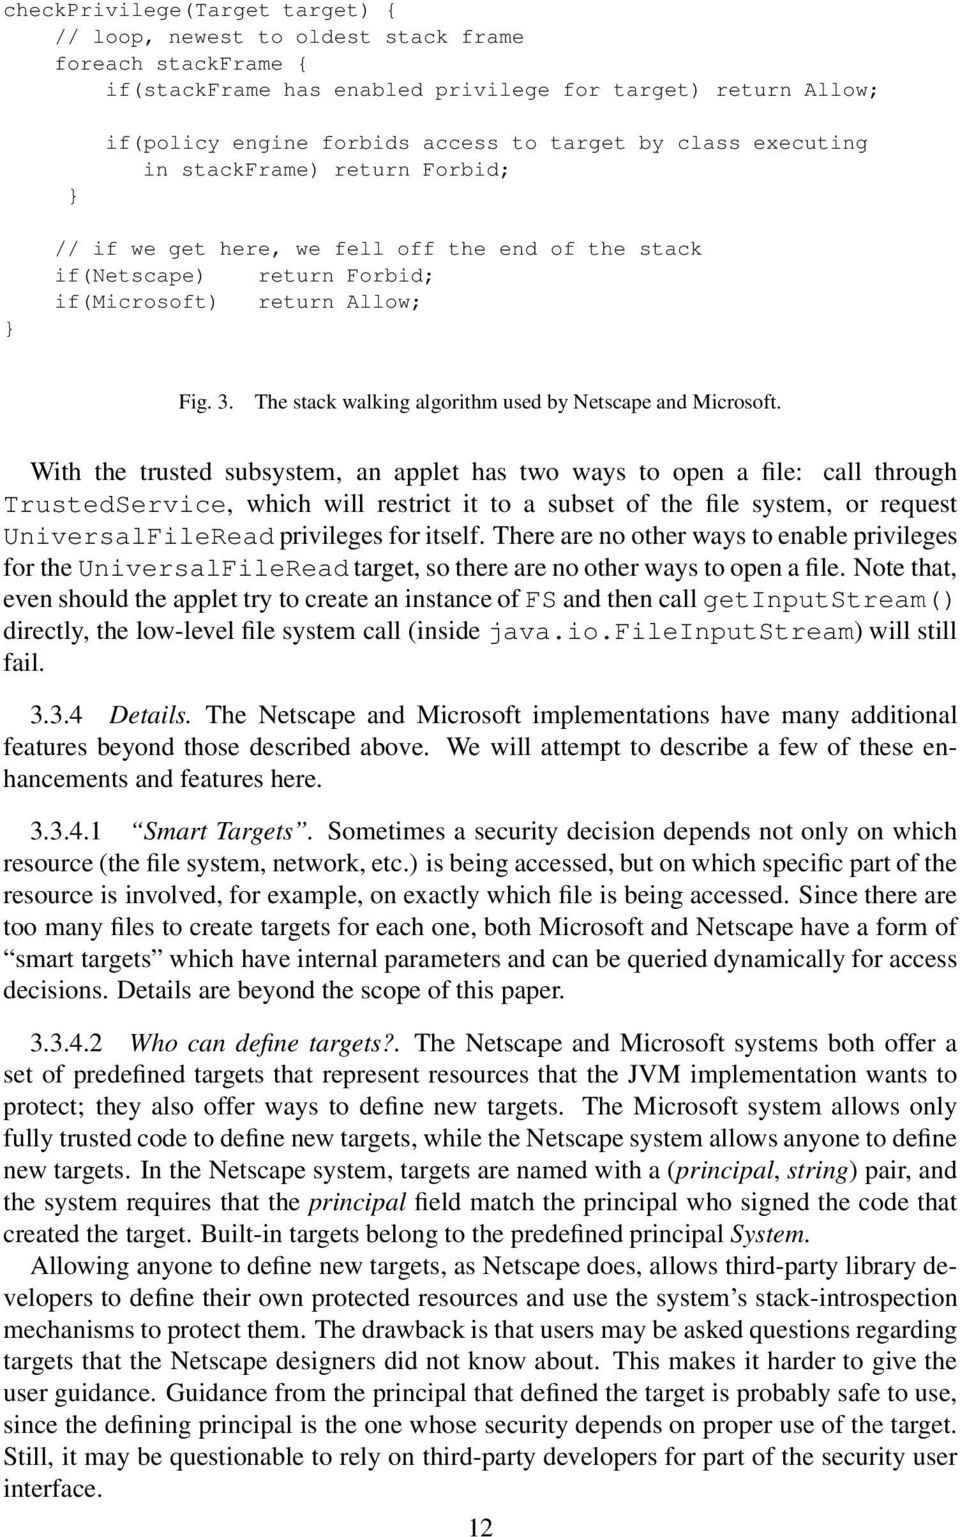 The stack walking algorithm used by Netscape and Microsoft.